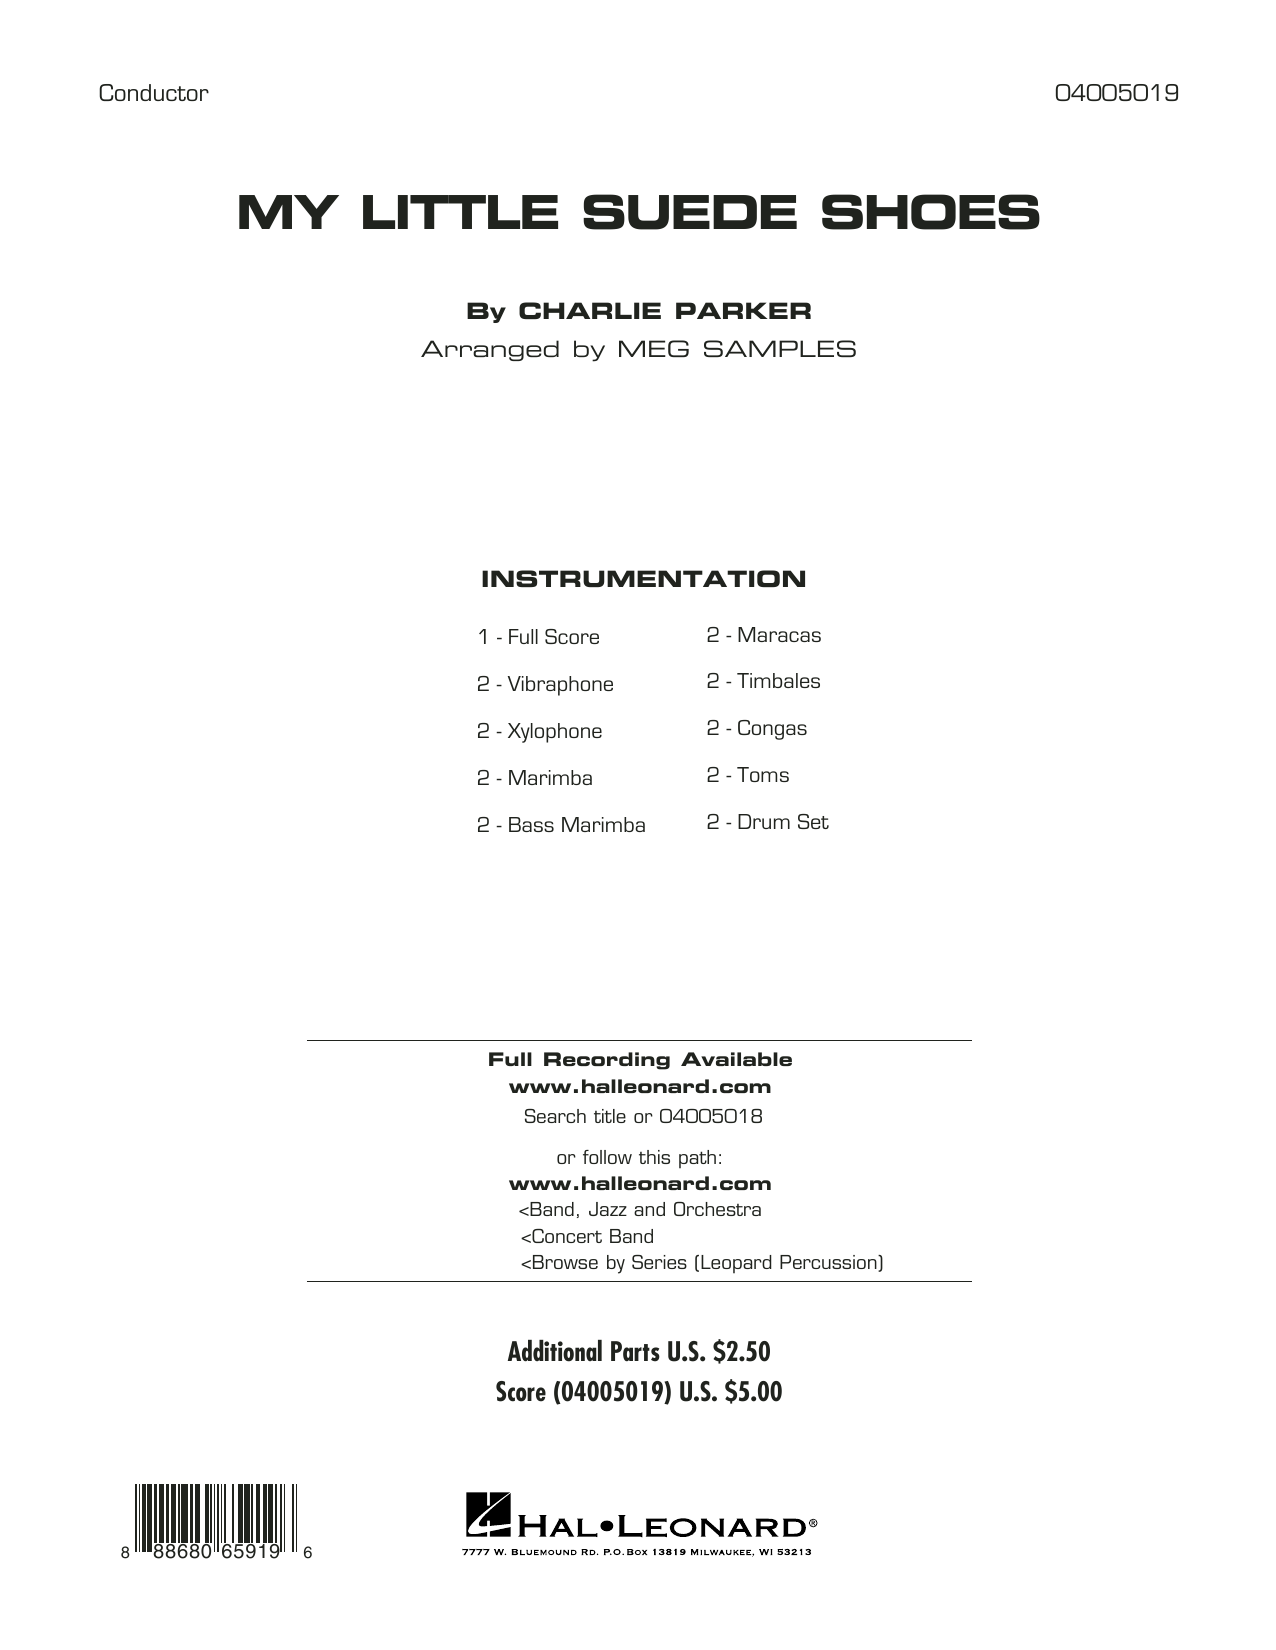 My Little Suede Shoes - Full Score Sheet Music